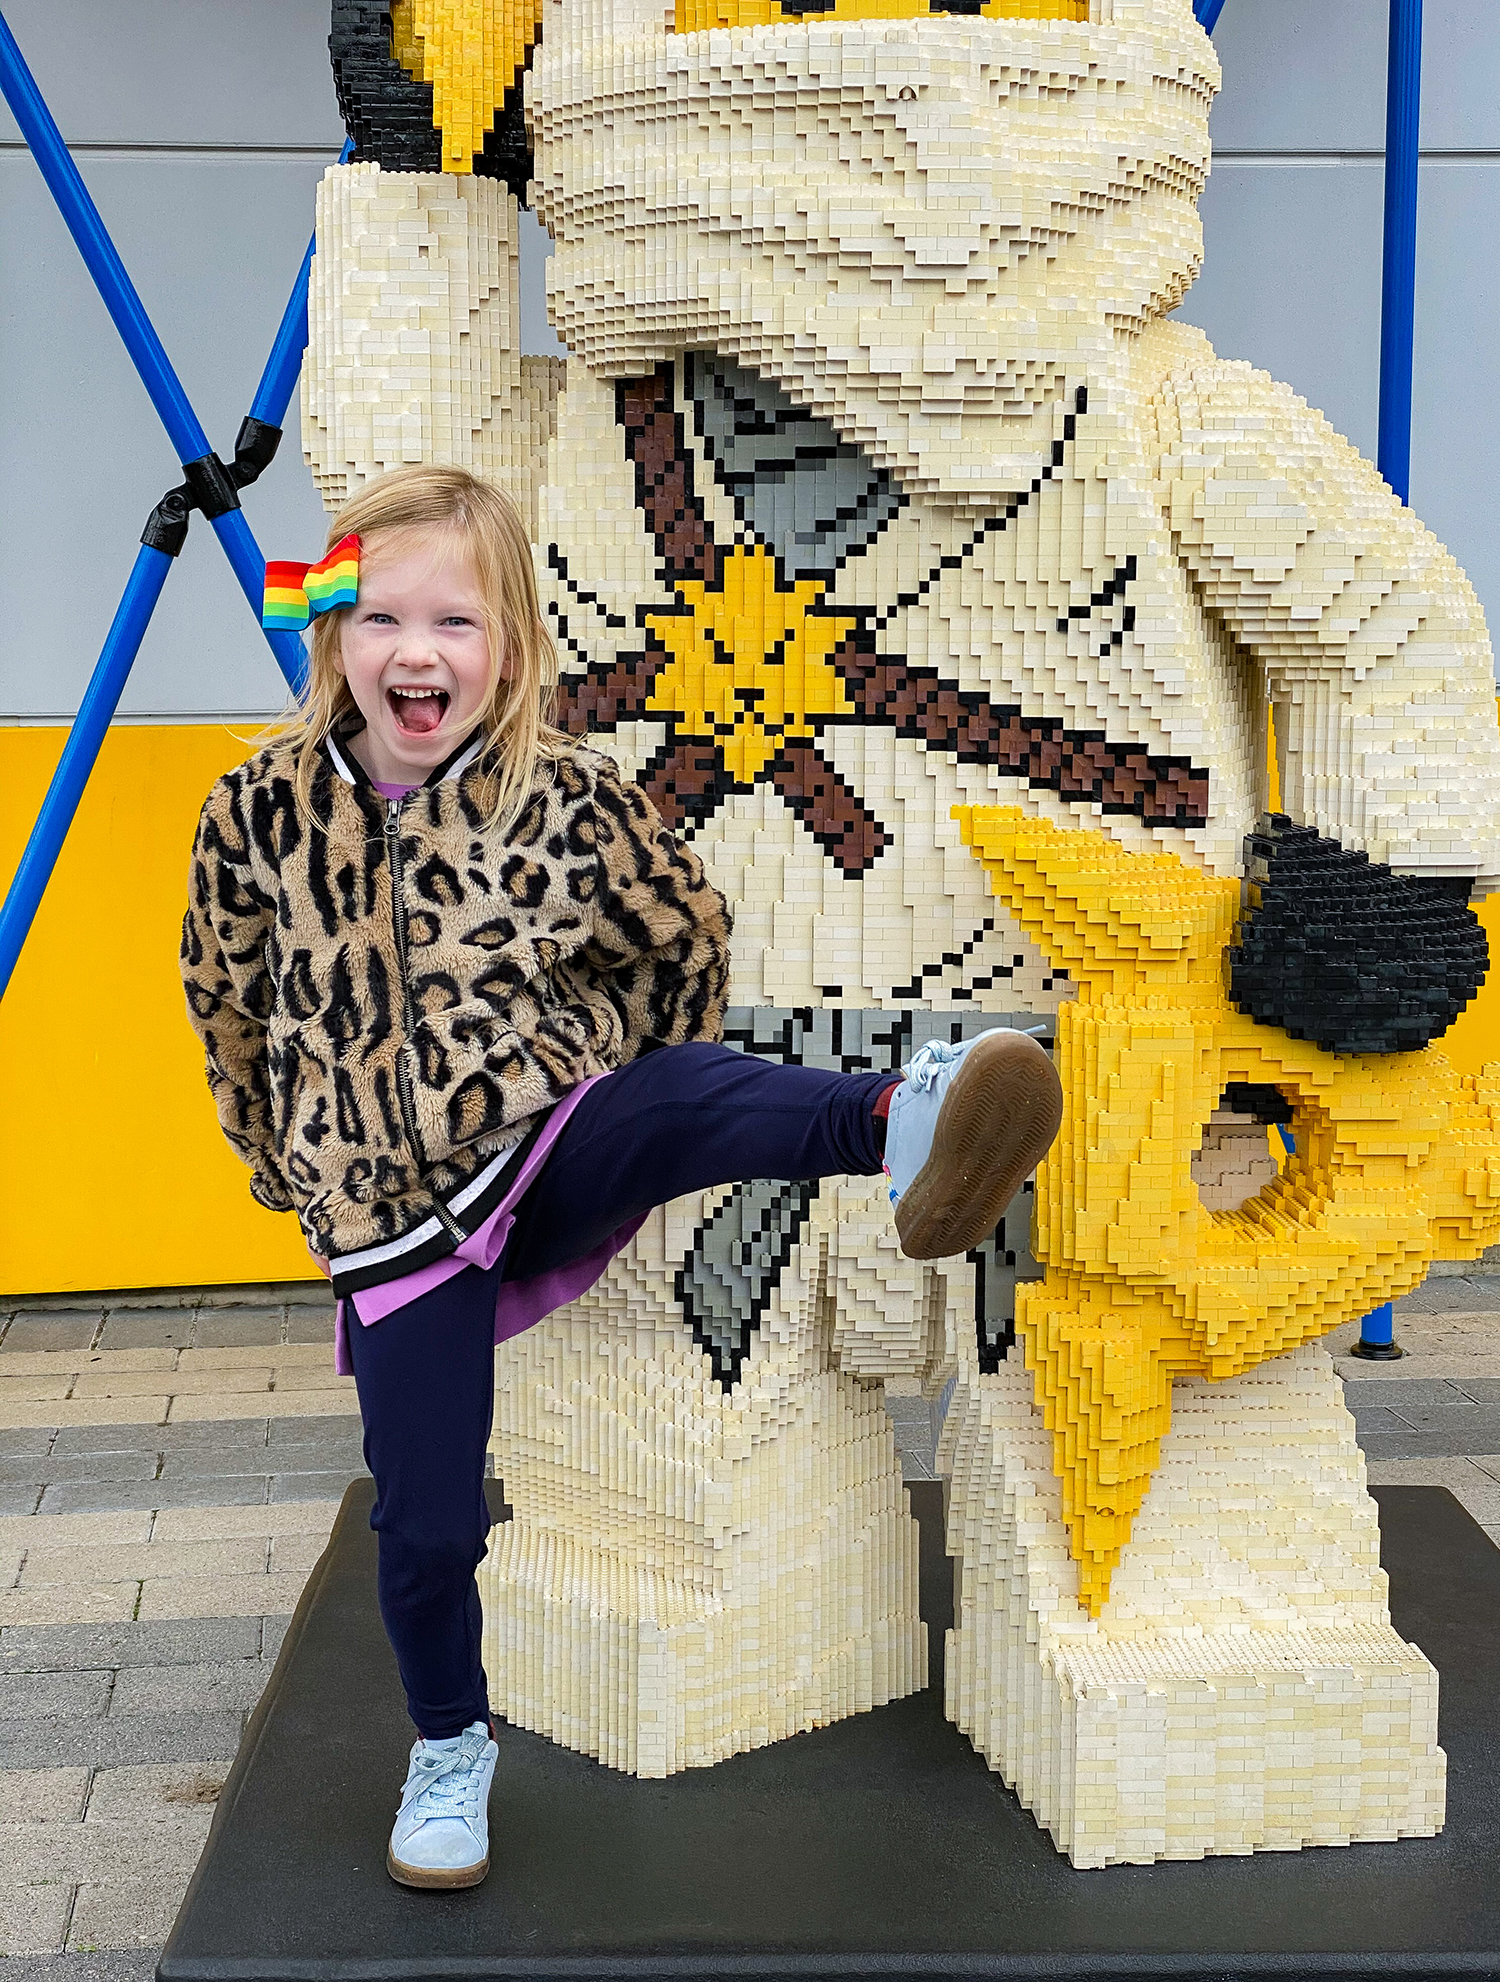 Gearing up for a trip to Legoland? This list is a full guide to the best Legoland California Rides for younger kids!